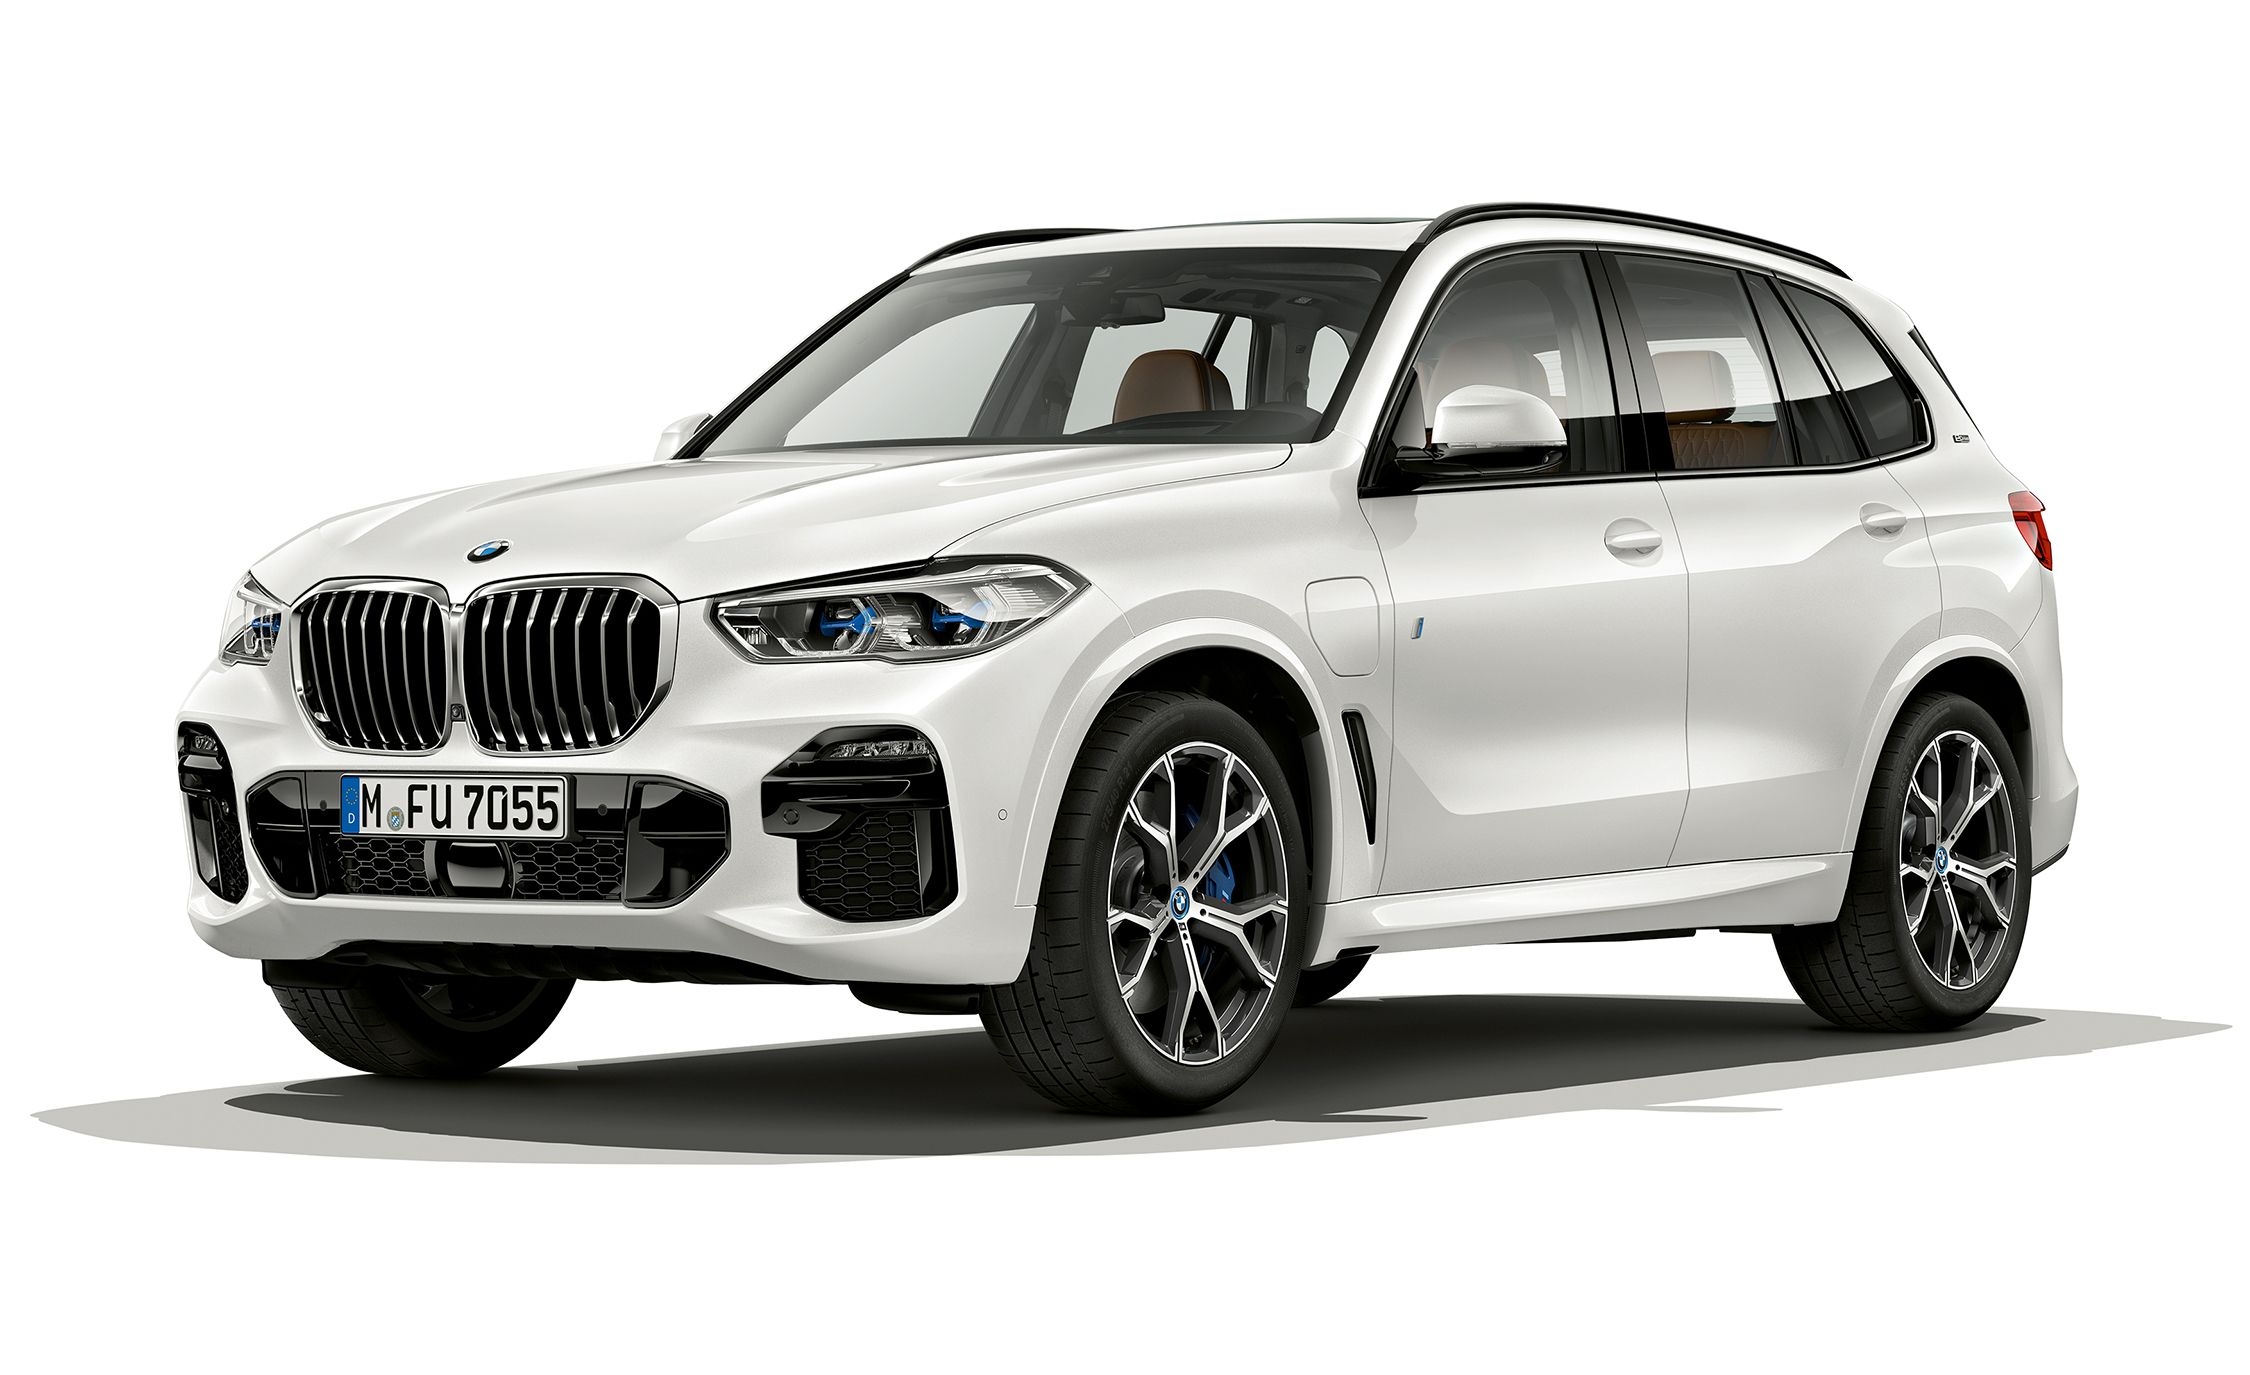 2021 Next Gen BMW X5 Suv Overview